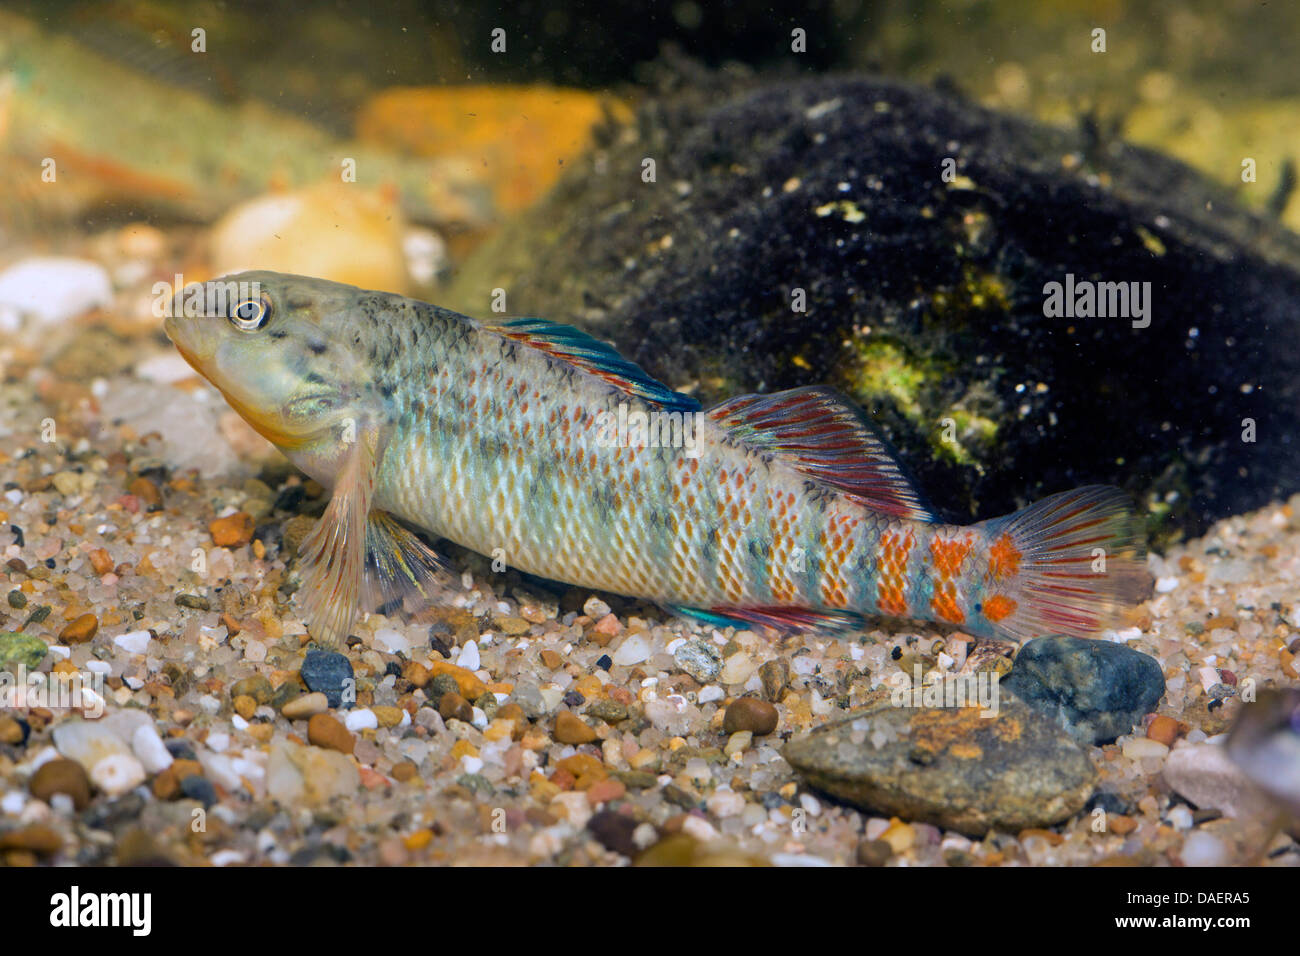 Rainbow Darter (Etheostoma caeruleum), 7 cm long male at the gravel ground of a water - Stock Image